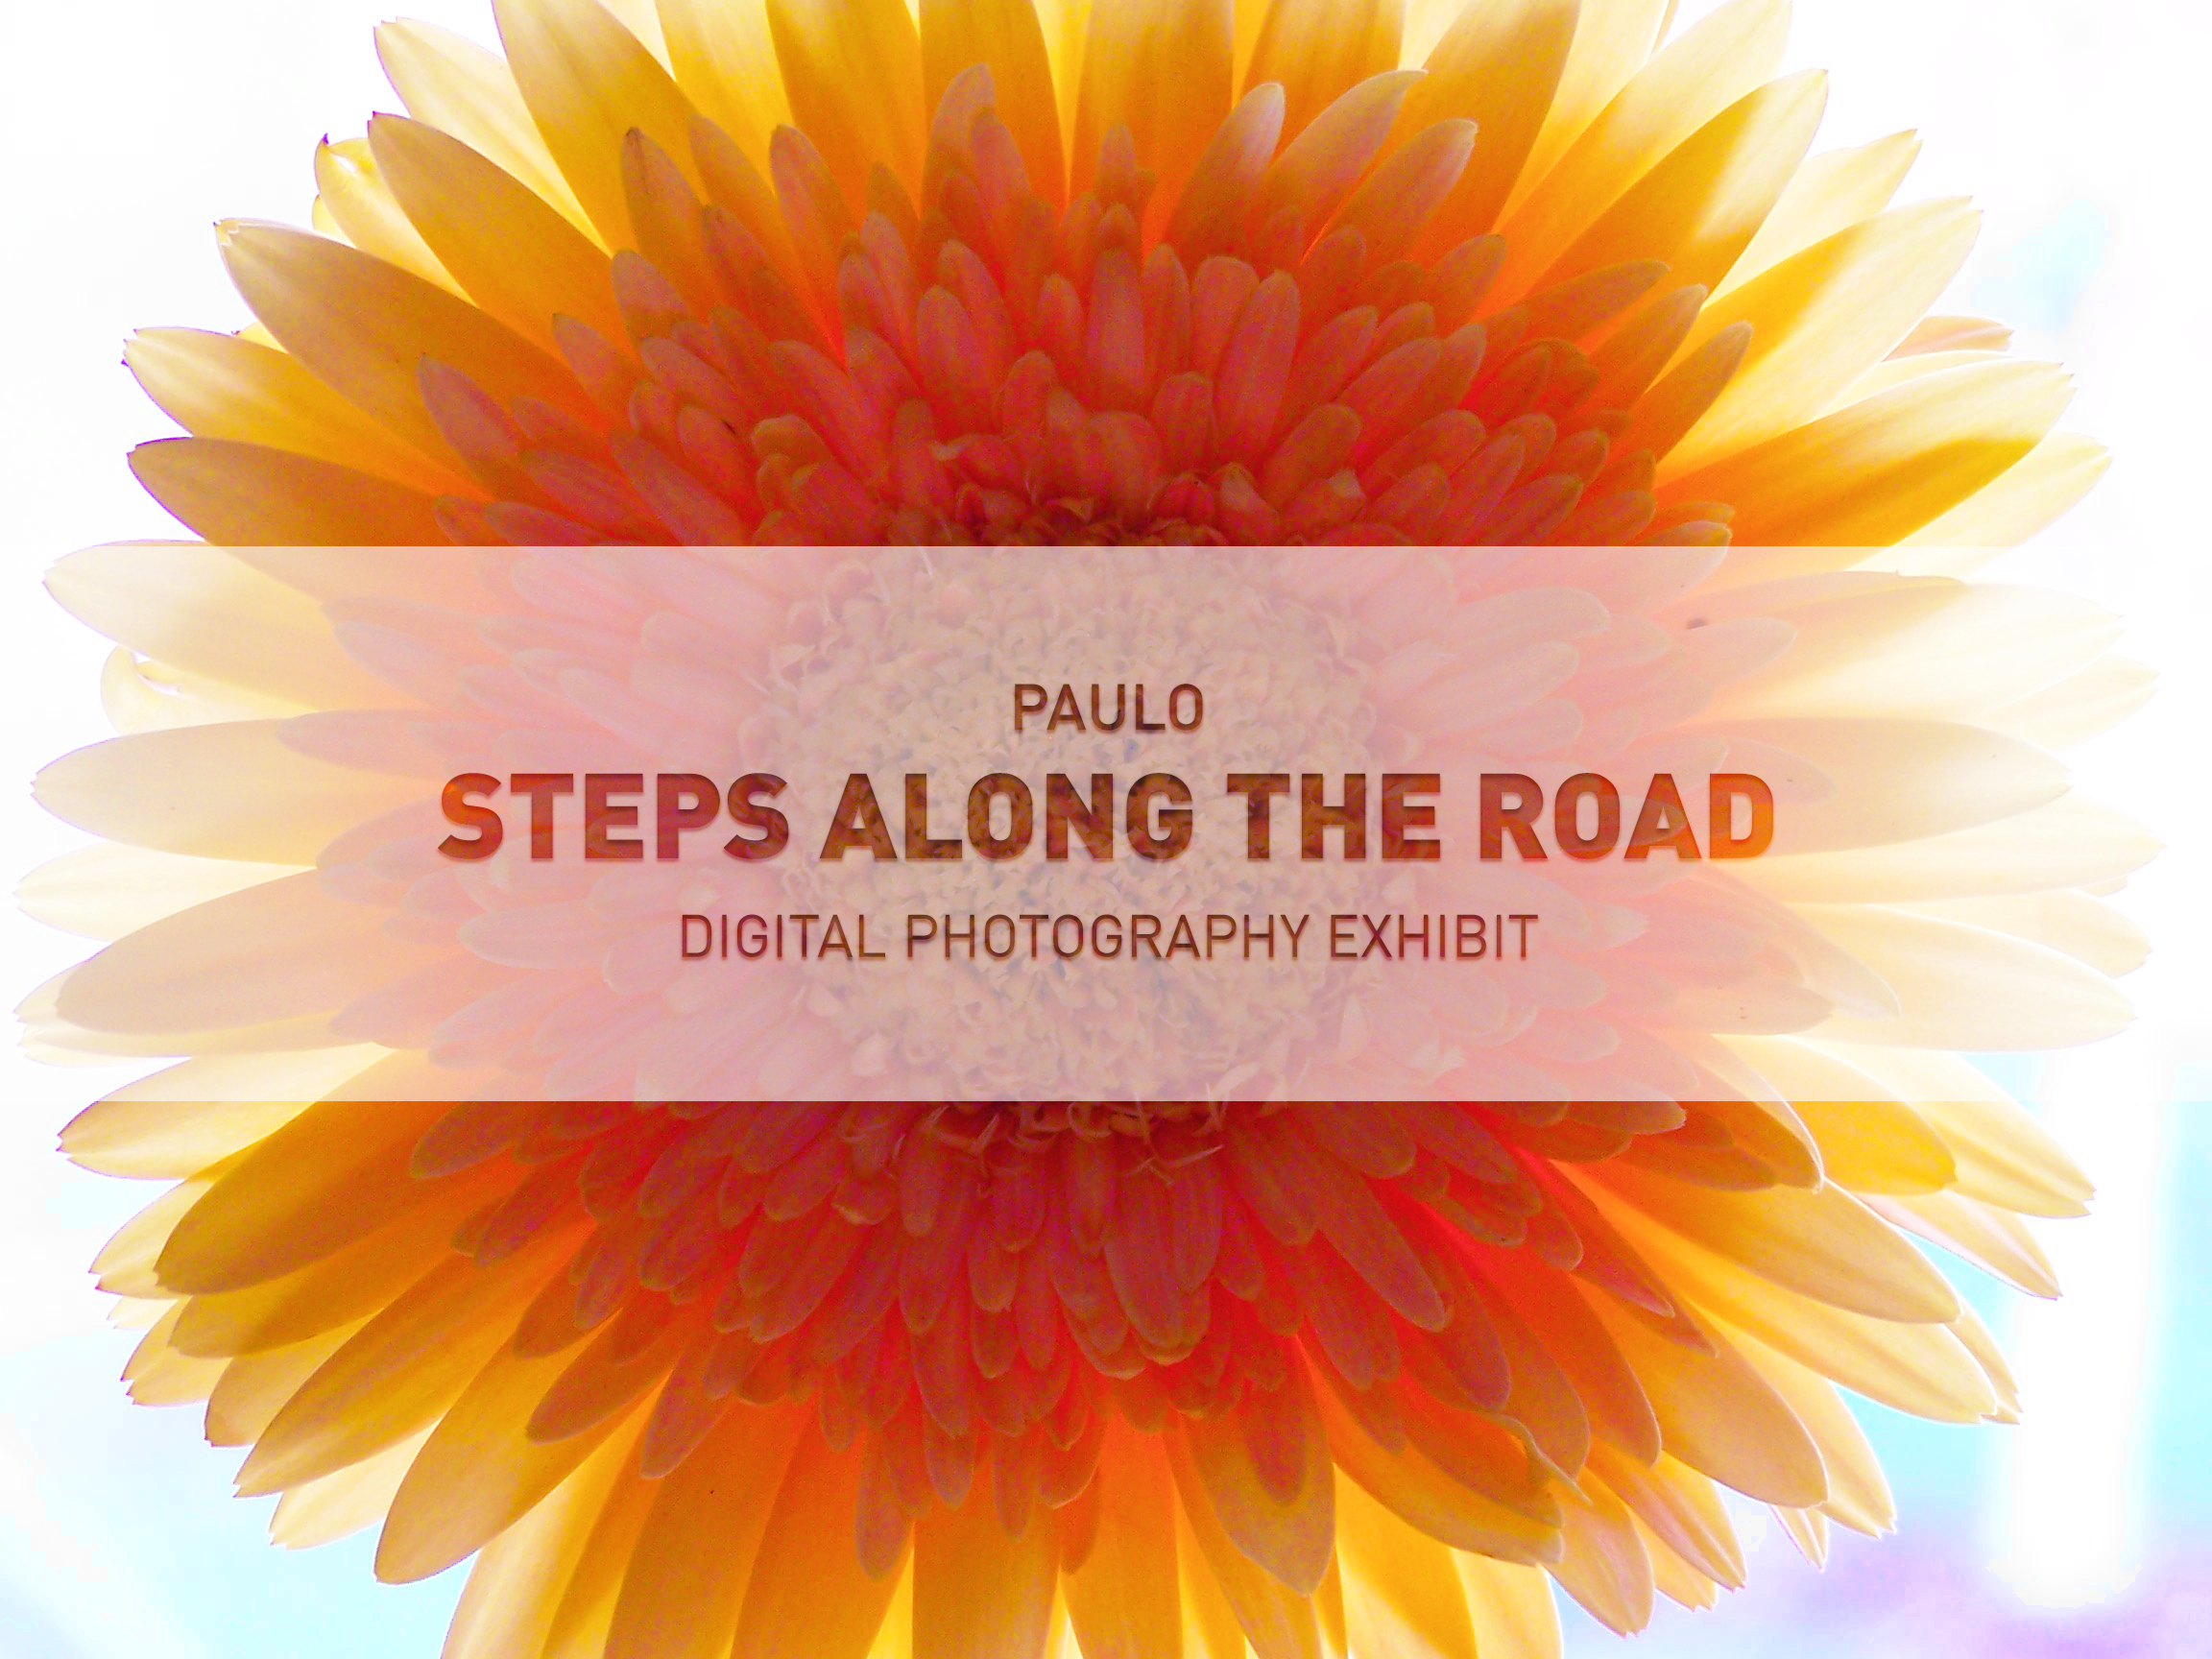 Brockton Presents: PAULO - Steps Along the Road